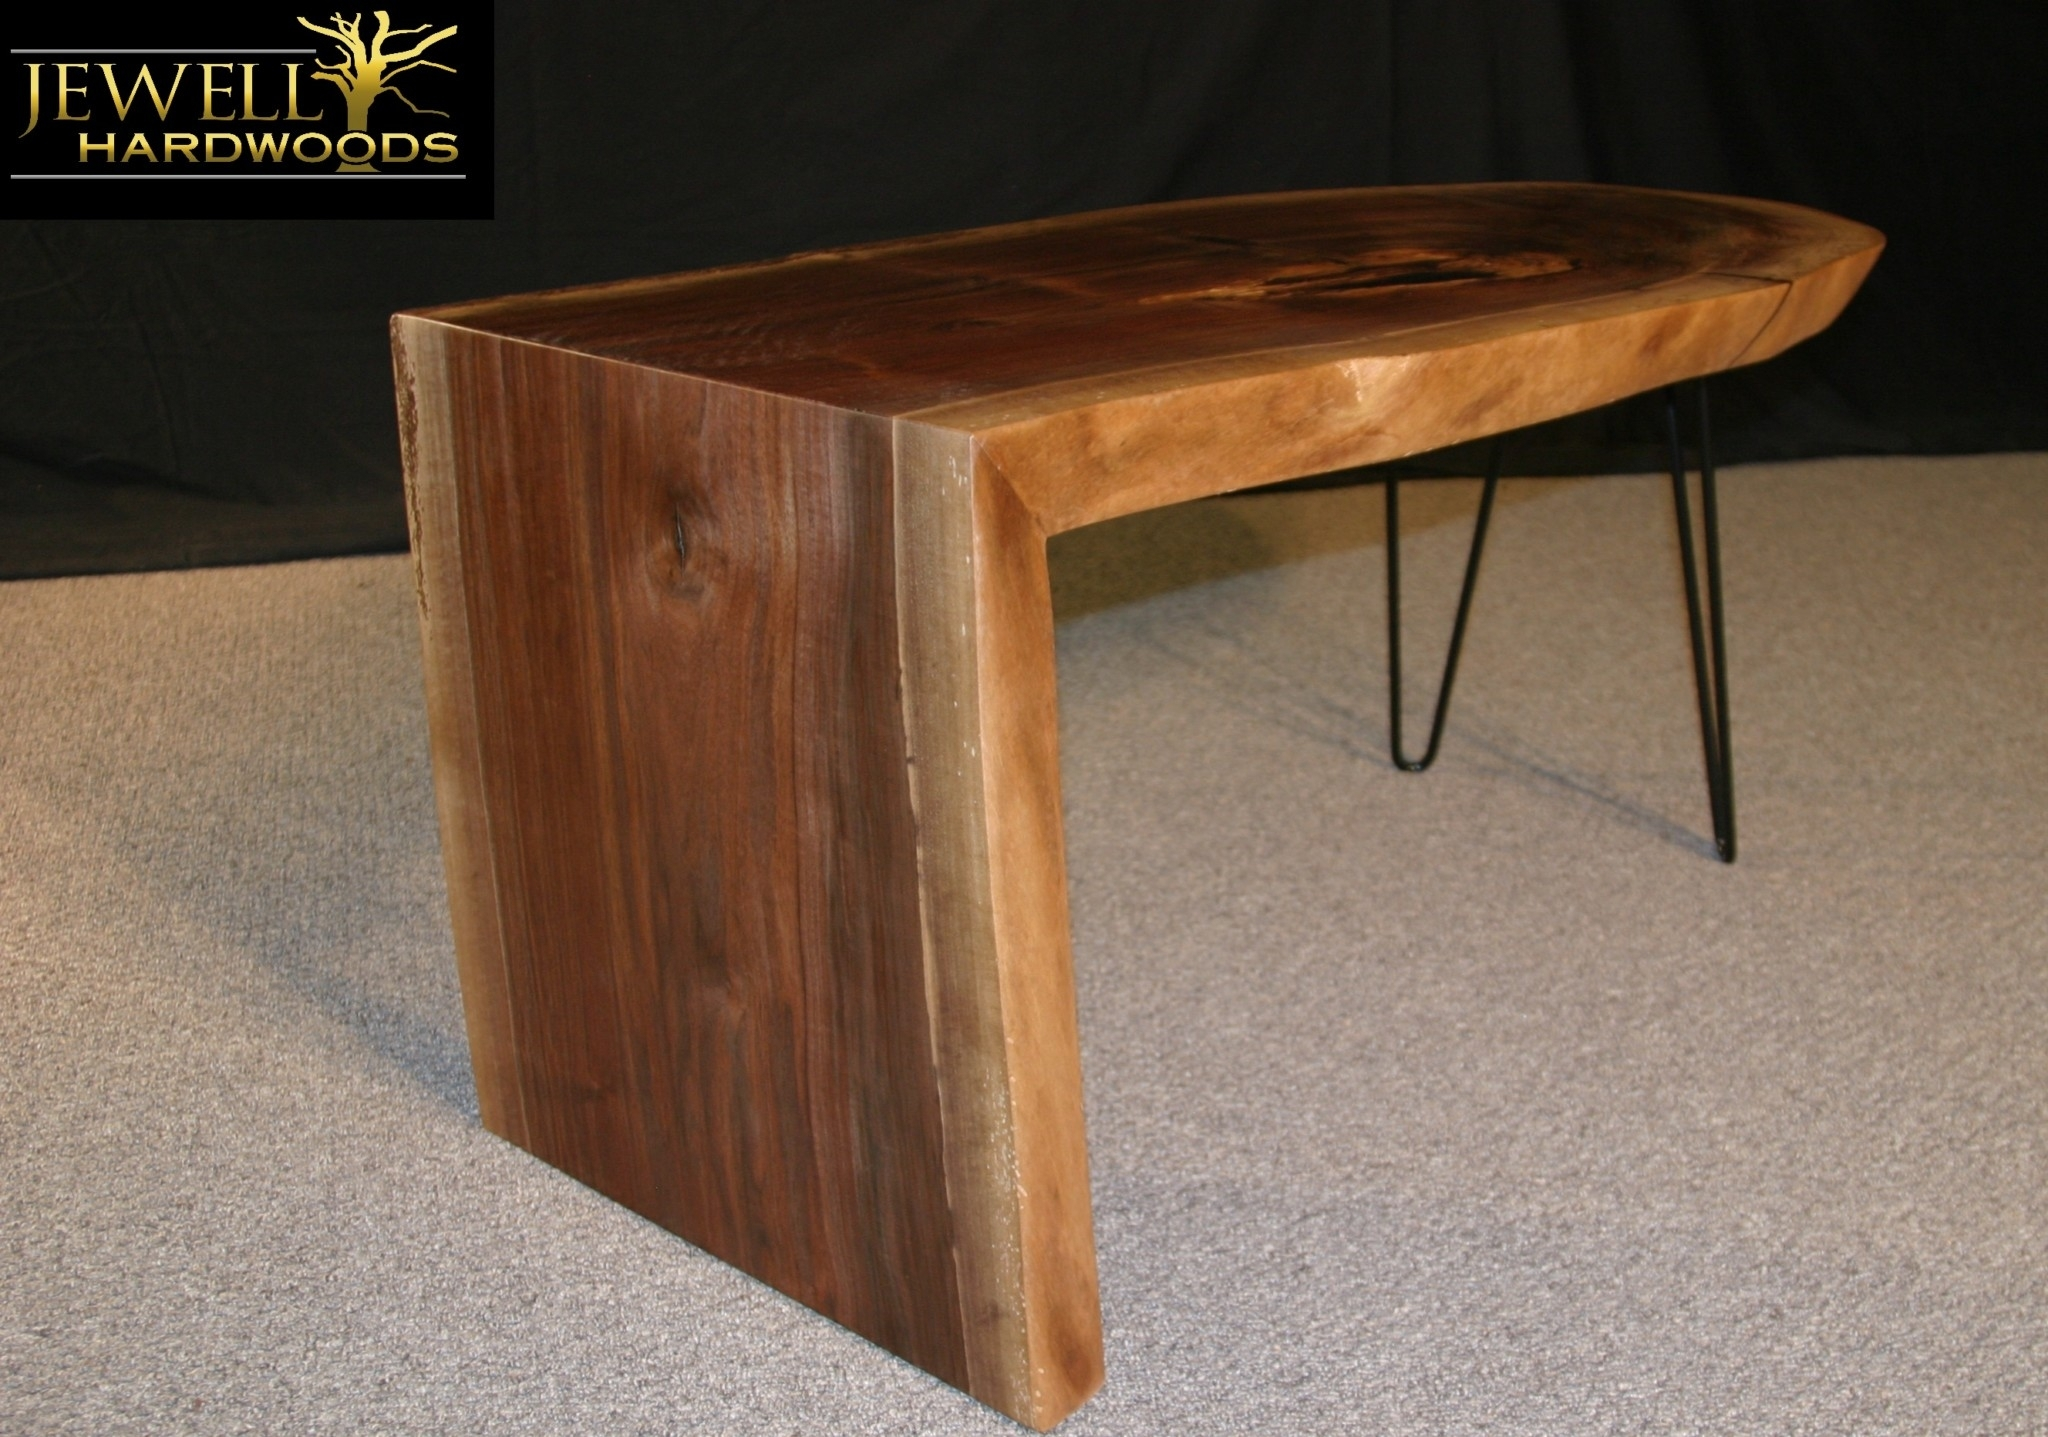 Waterfall-Coffee-Table-With-Metal-Hairpins-Jewell-Hardwoods-Logo1 throughout Waterfall Coffee Tables (Image 30 of 30)